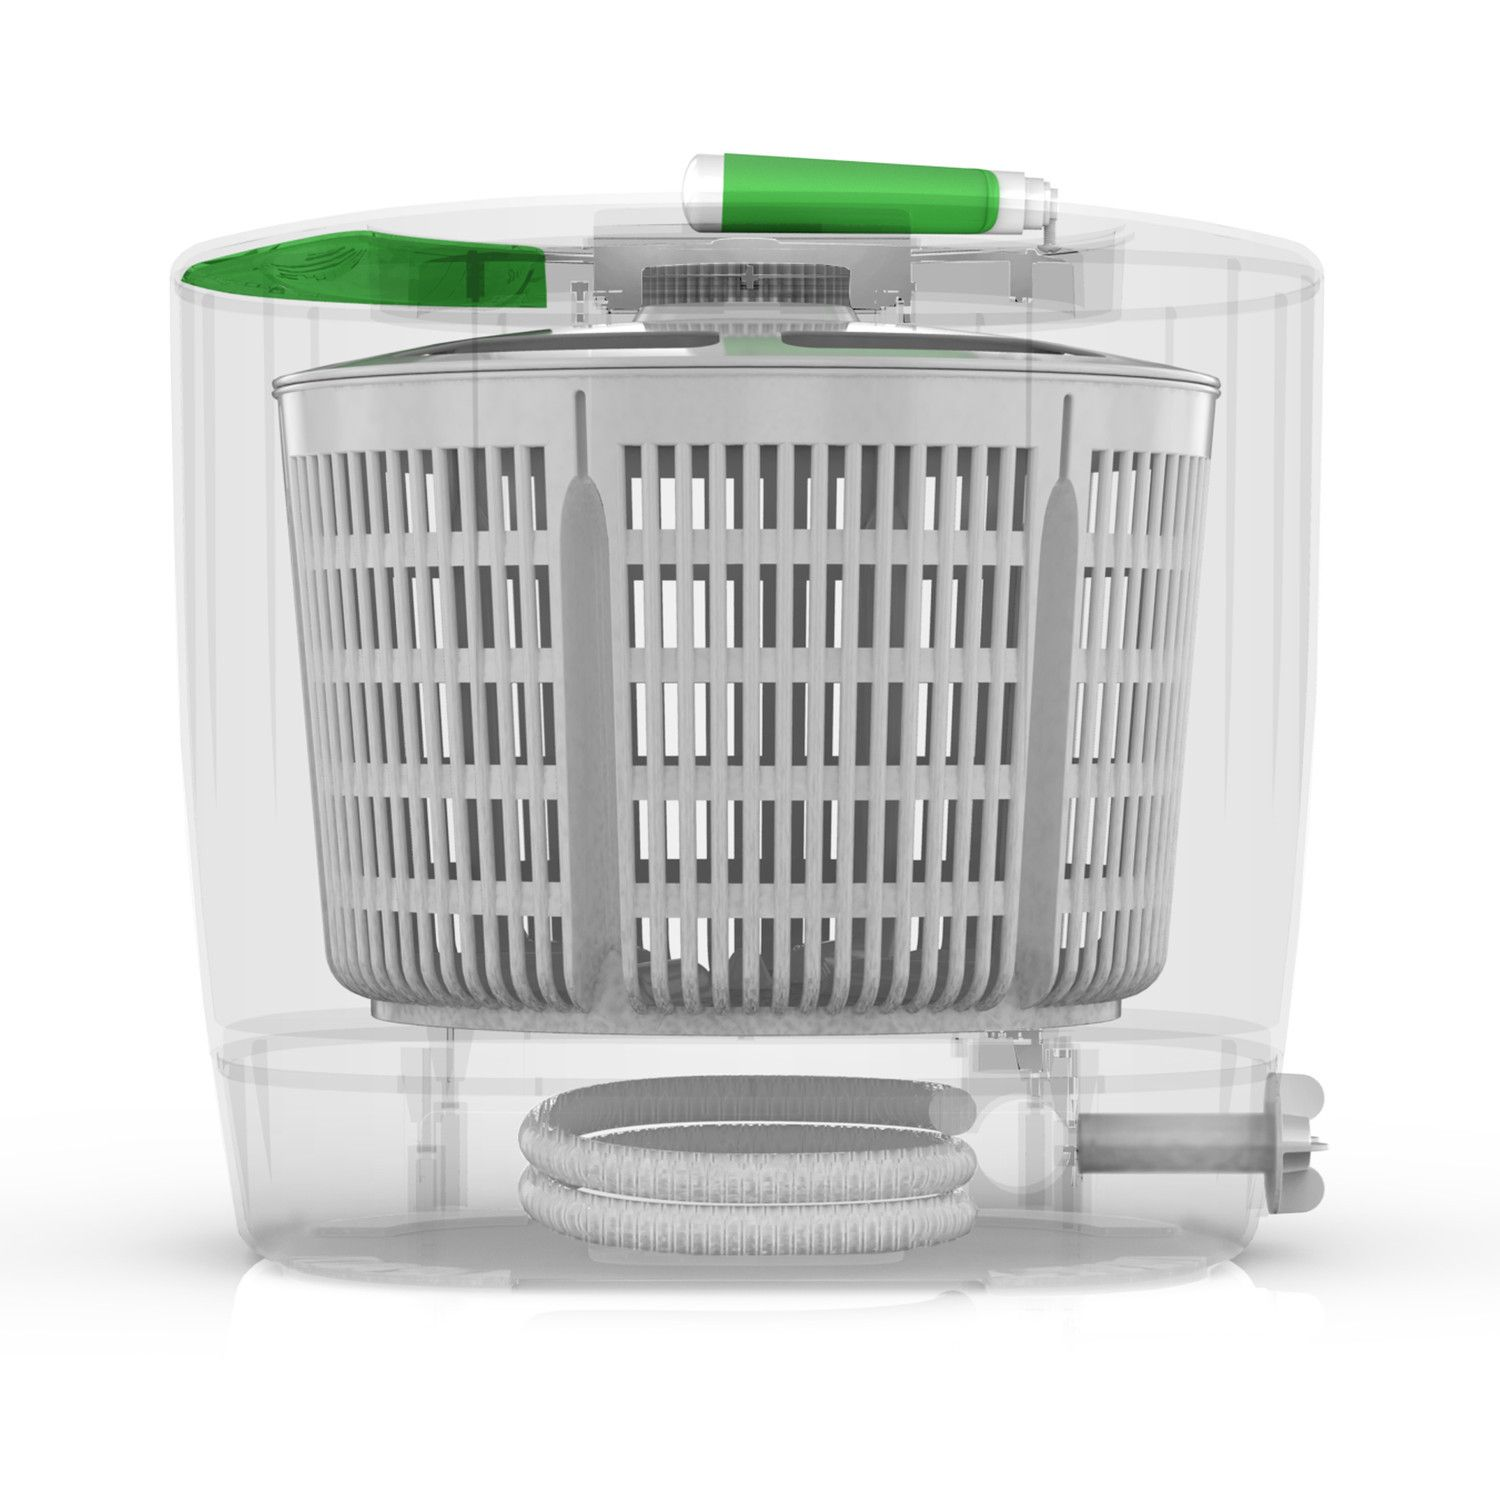 Laundry Pod Portable Clothes Washer Laundry Pods Portable Washer